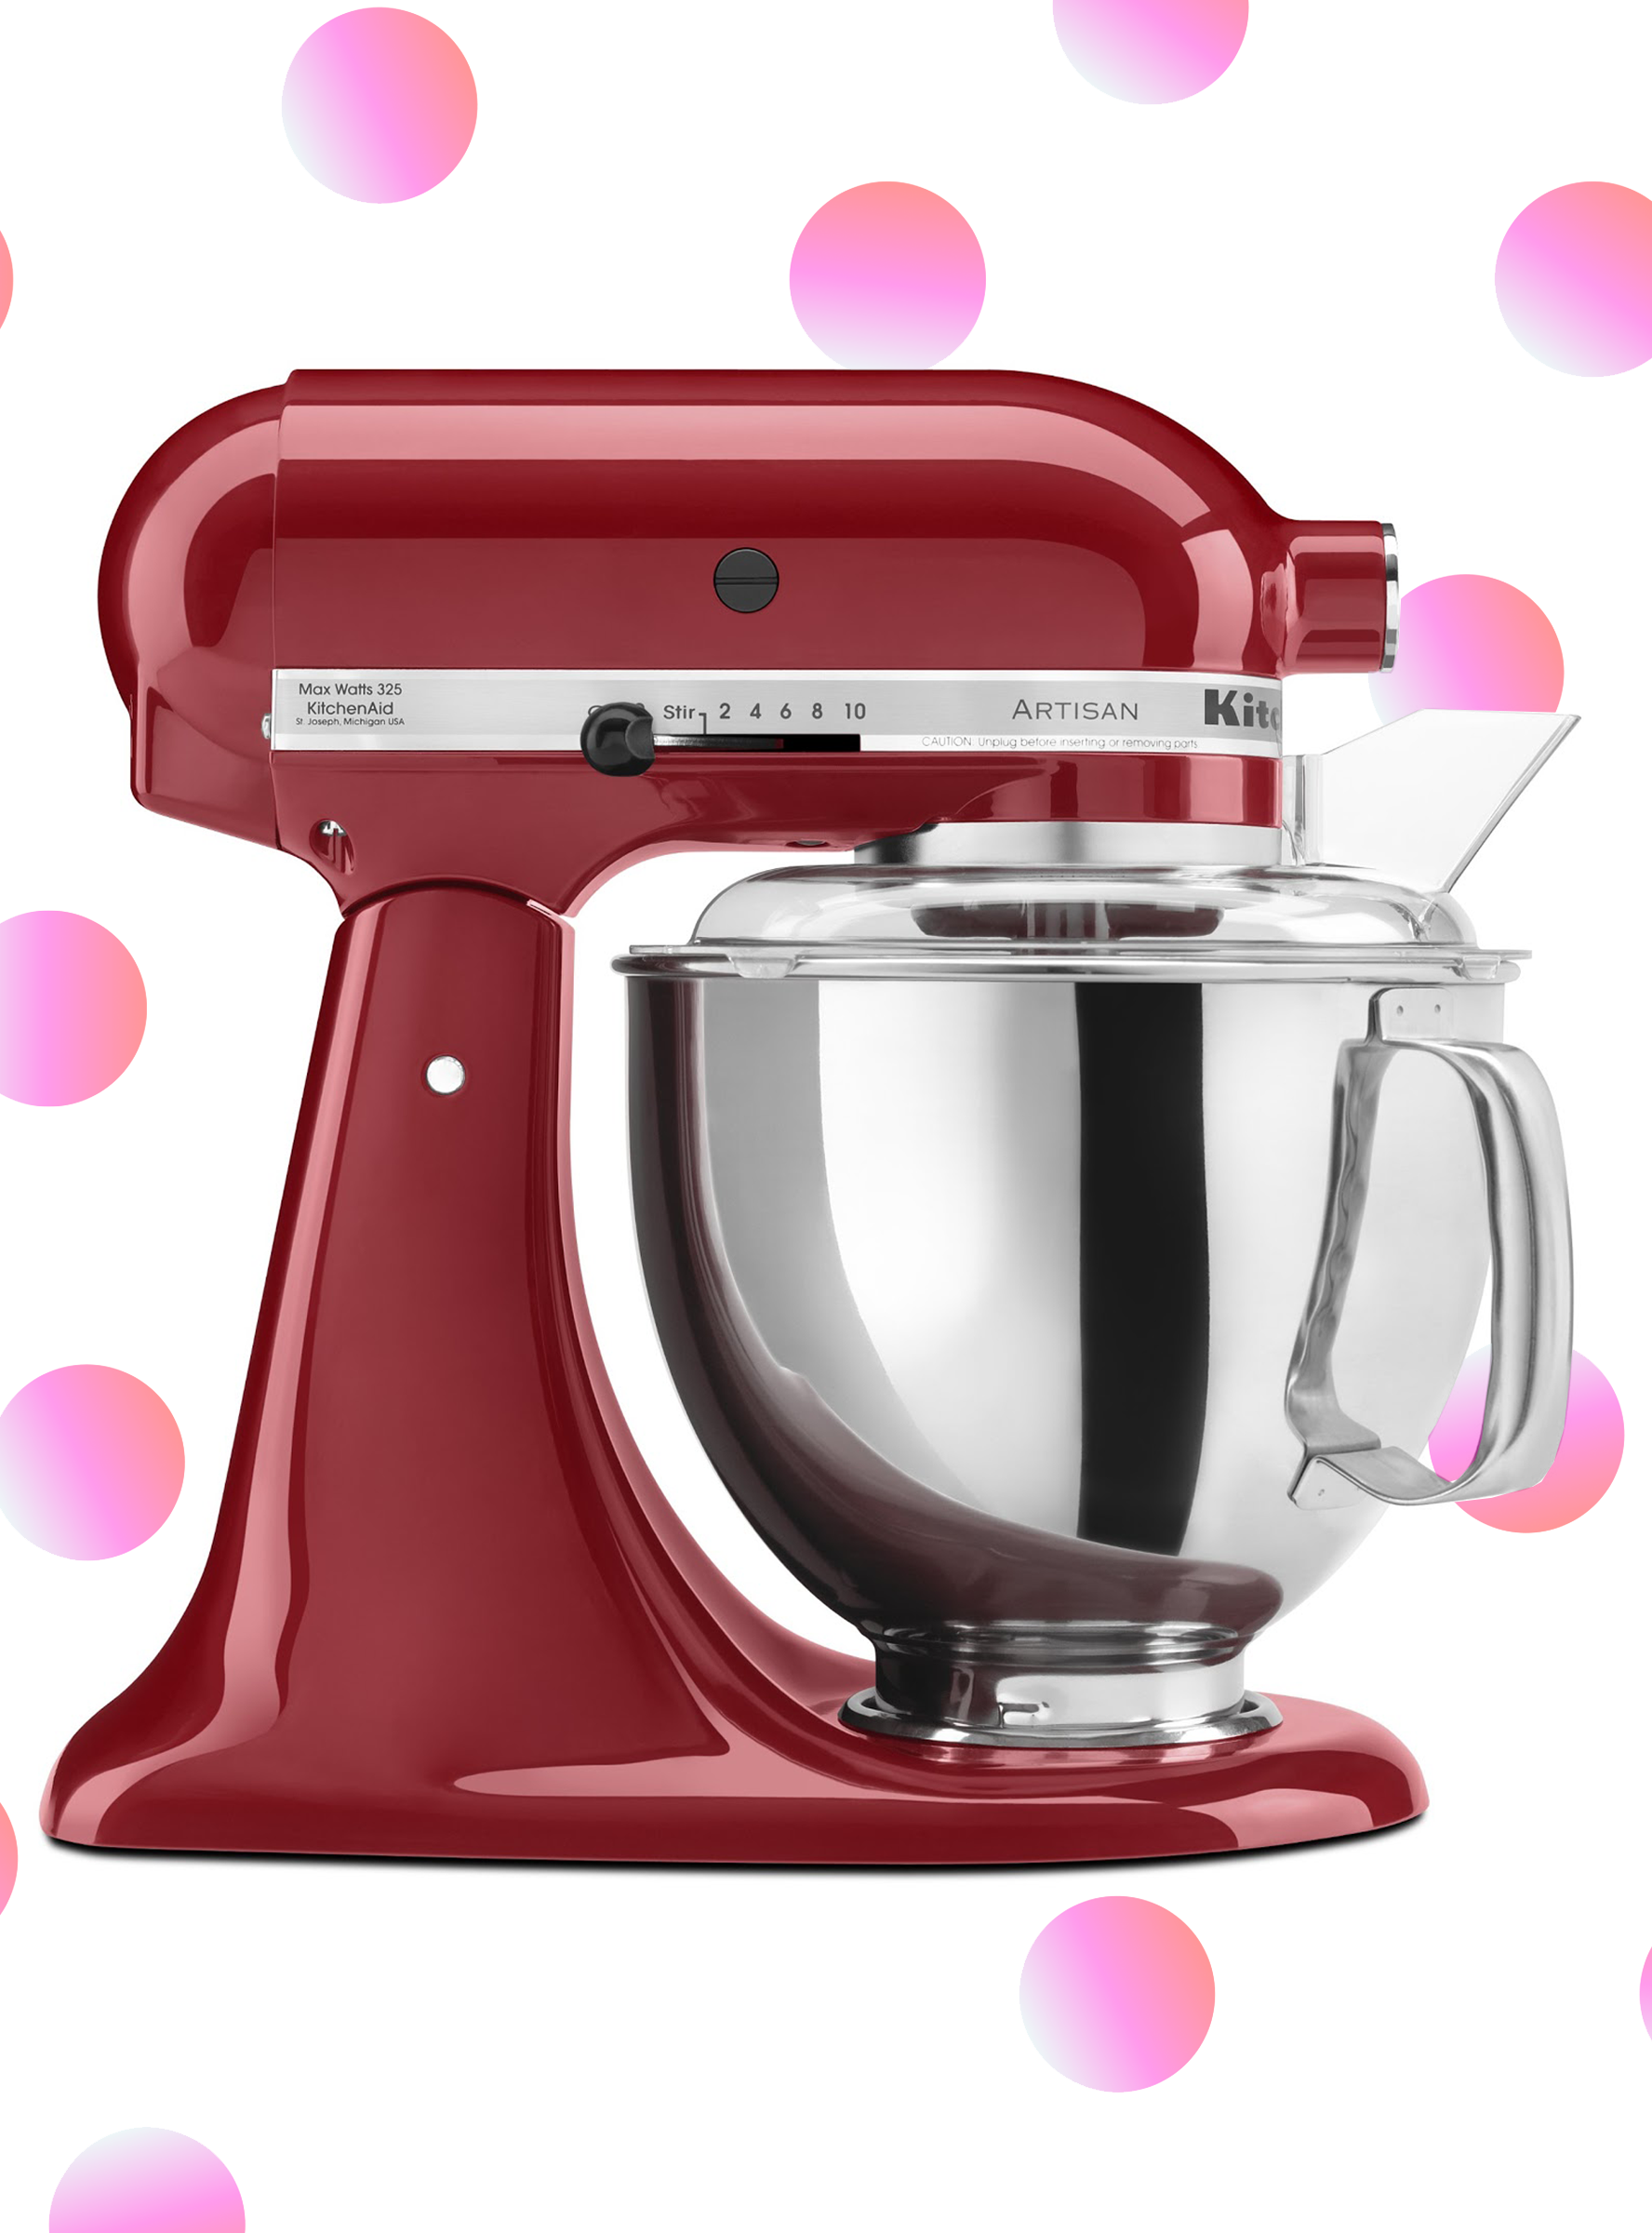 Coloured Kitchen Appliances Kitchenaid Stand Mixer New Colors March 2017